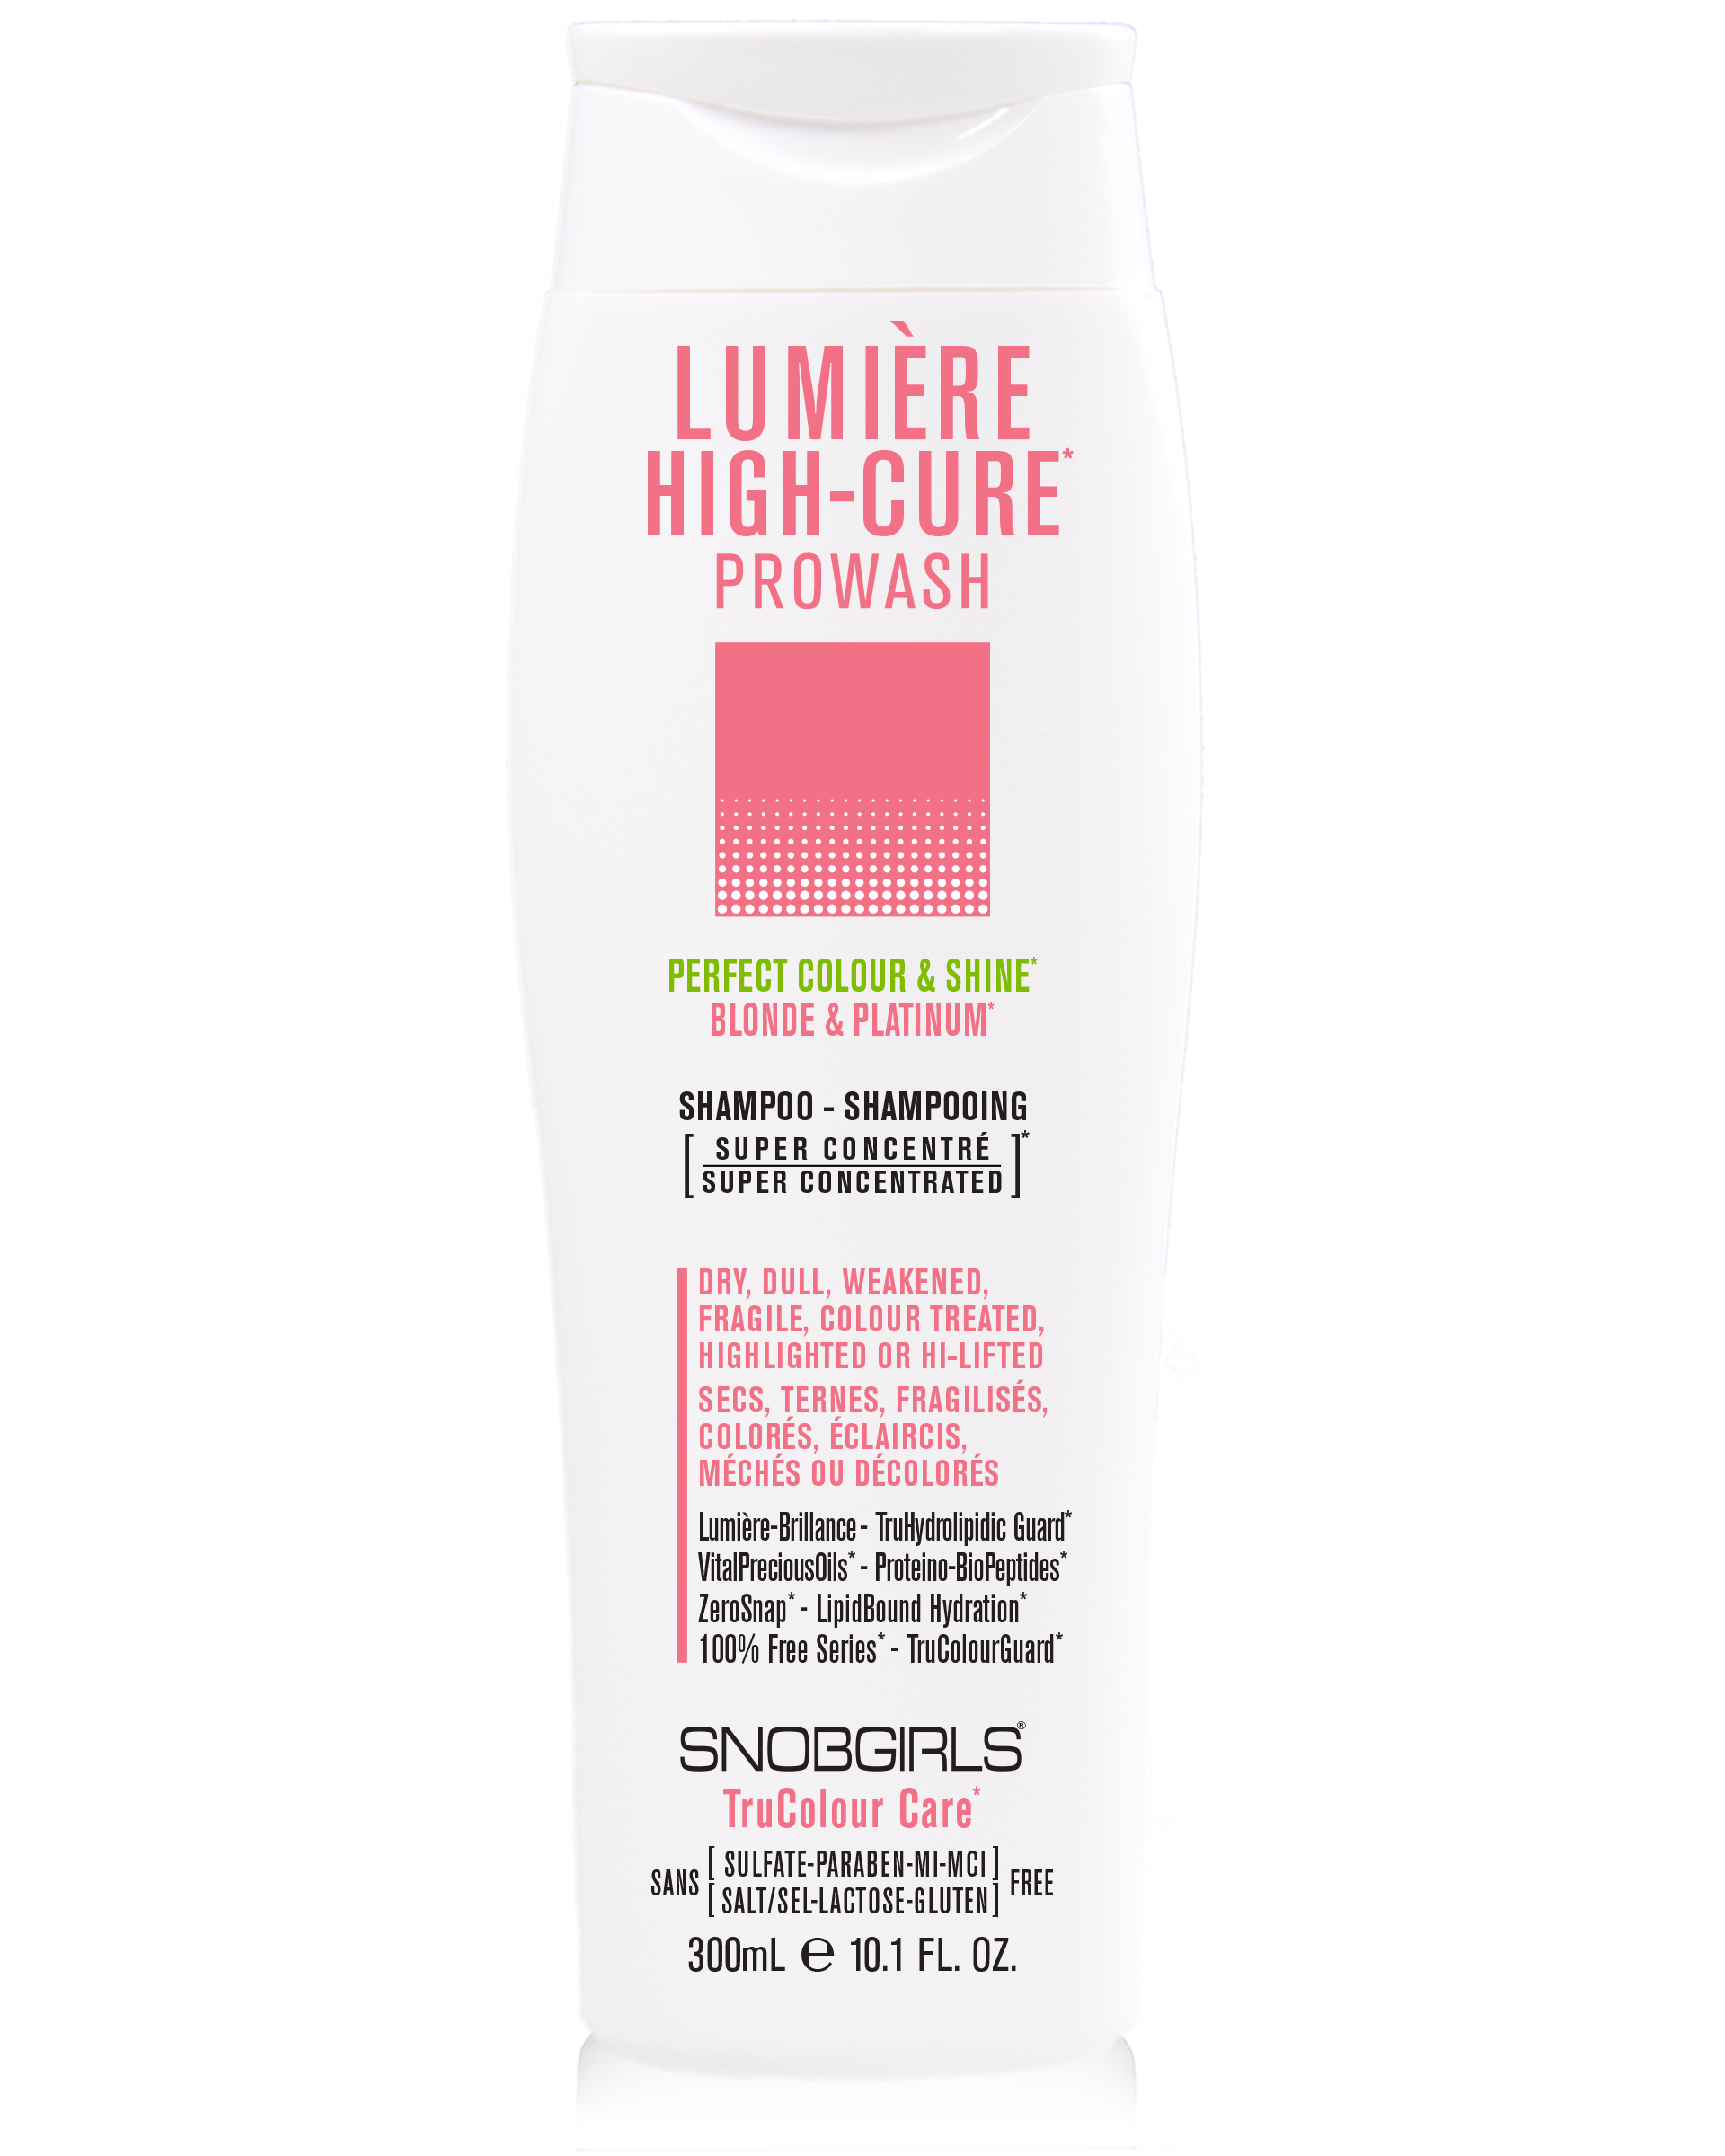 LUMIERE HIGH-CURE PROWASH - SNOBGIRLS Australia